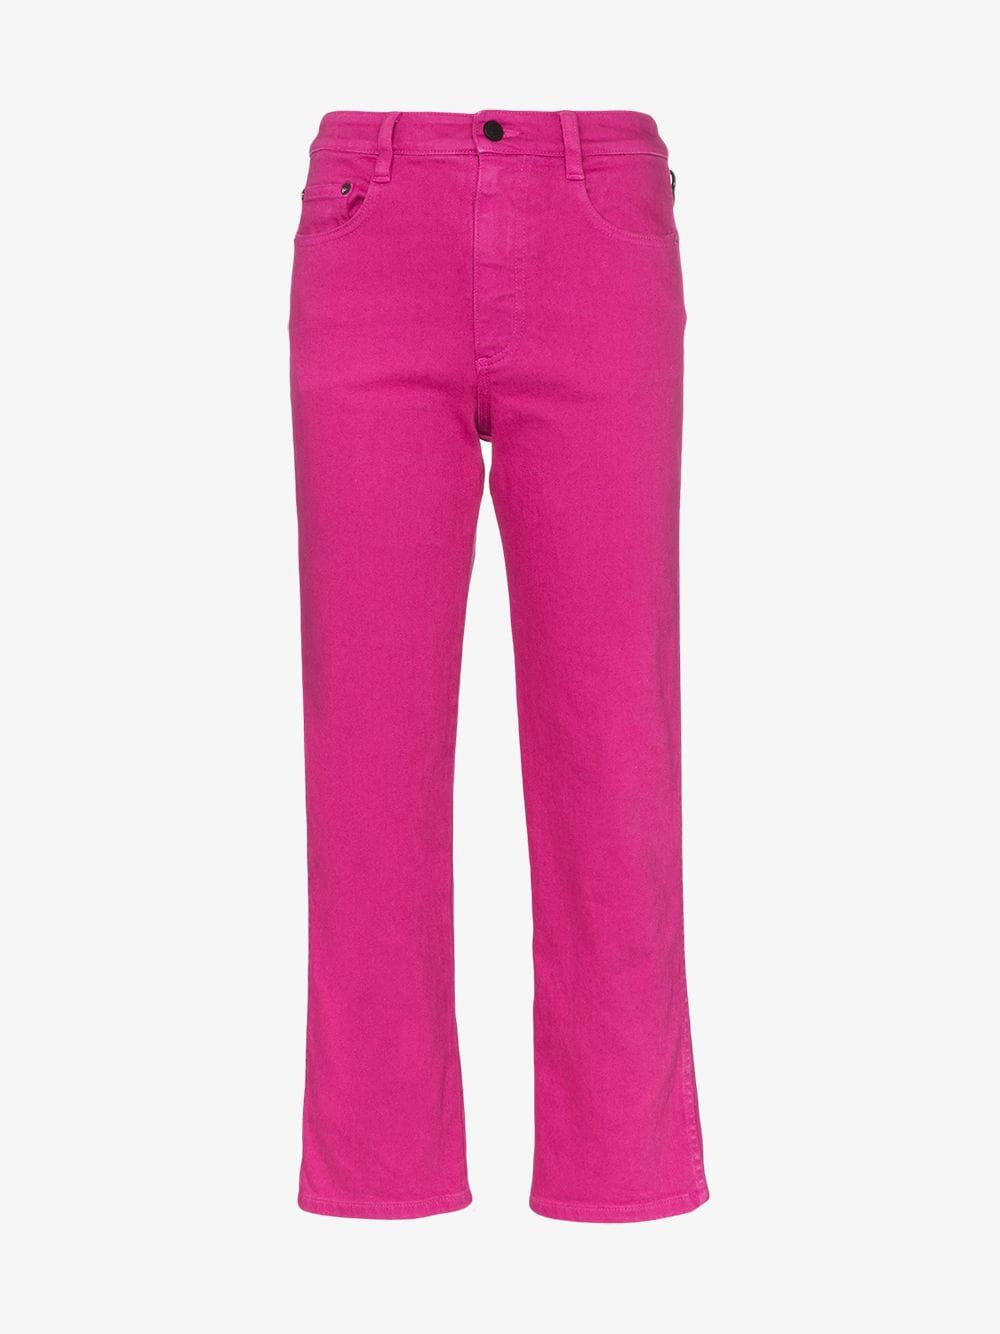 Simon Miller straight leg cropped jeans in pink